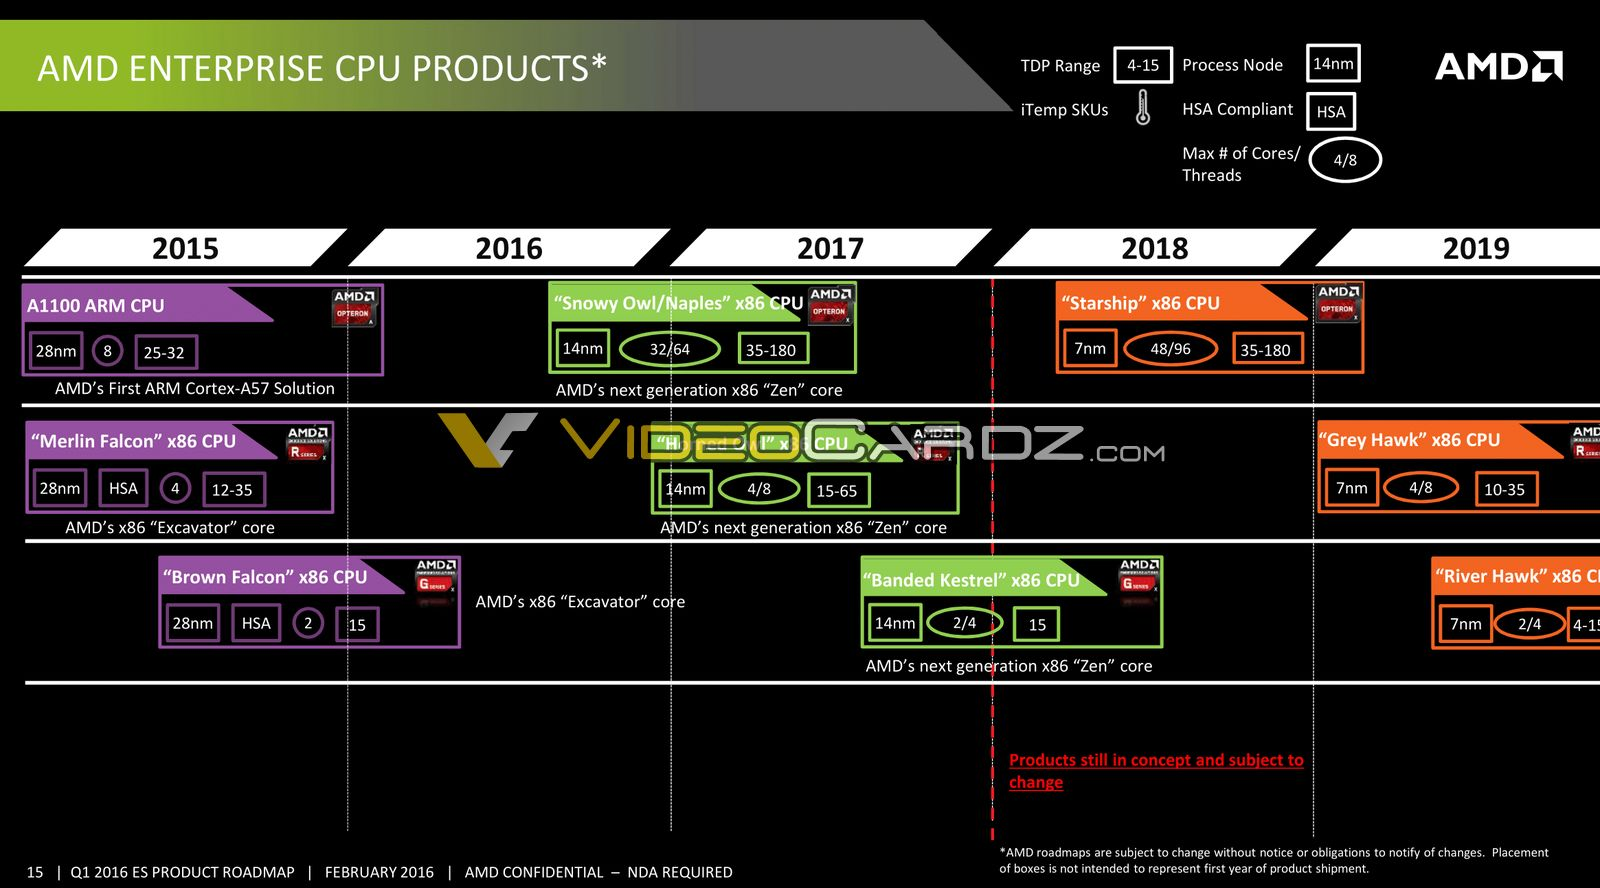 Amd Leaked Roadmap Confirms 7nm Starship Cpu With 48 Zen 2